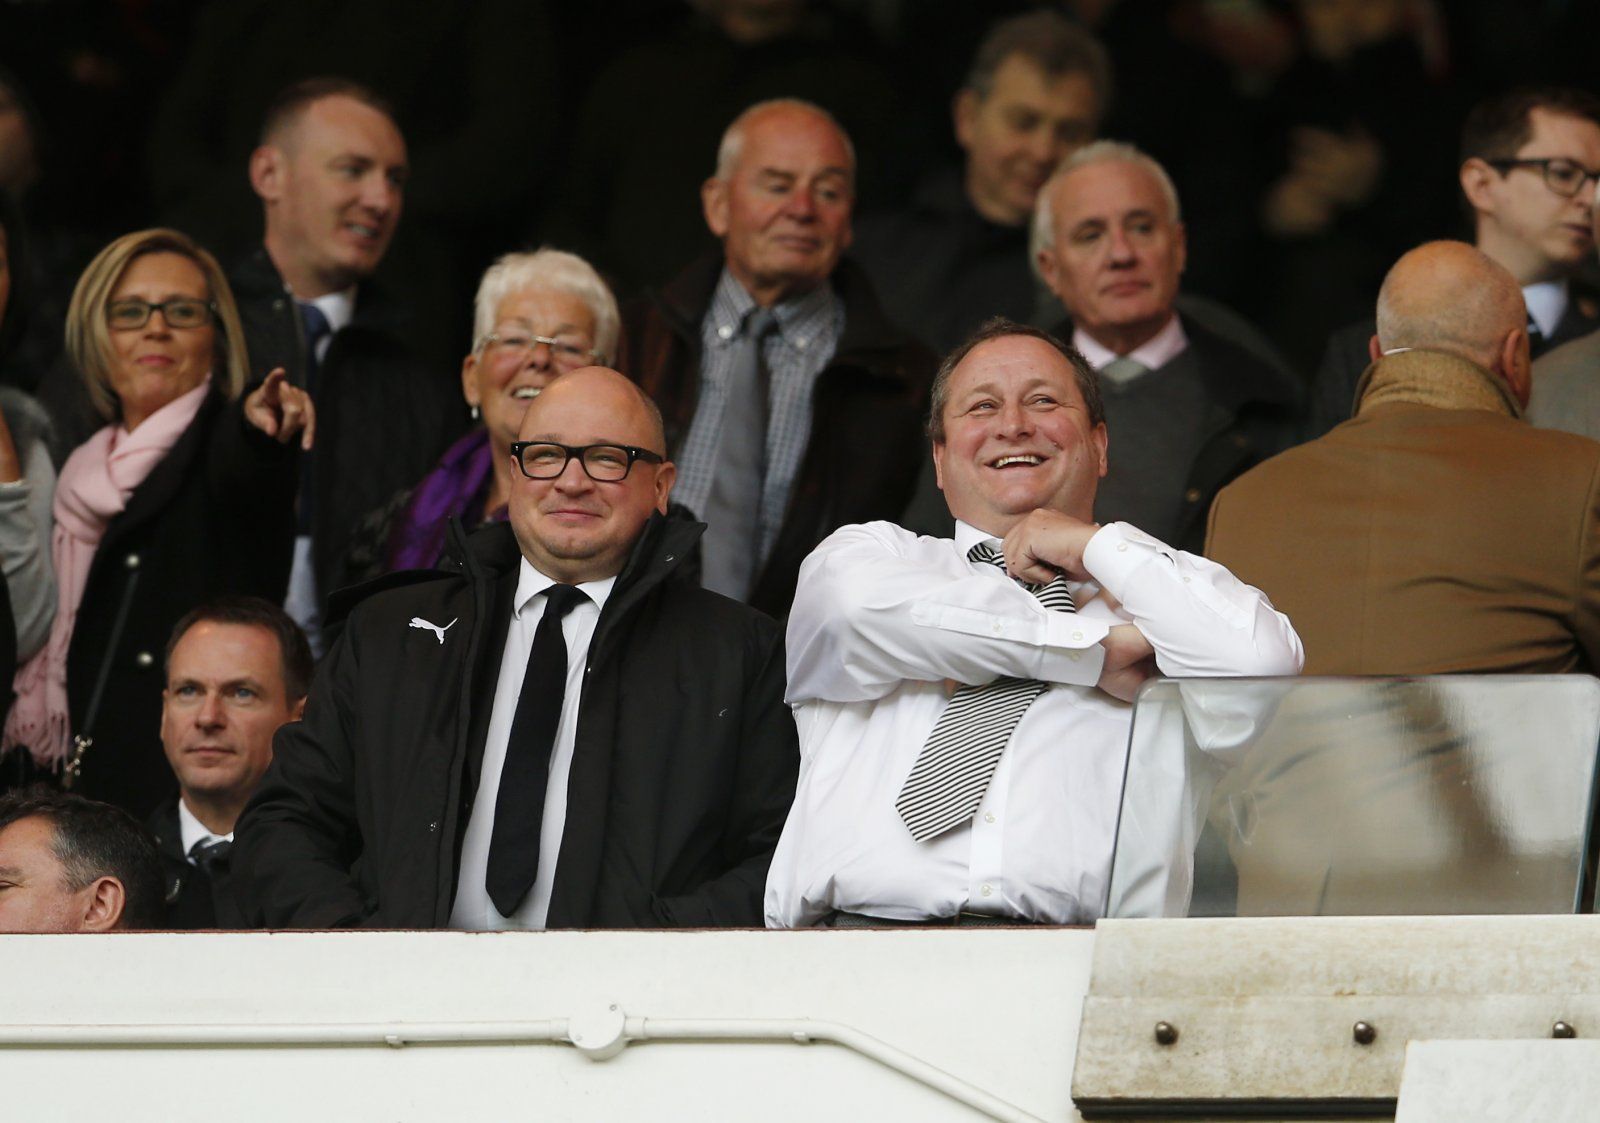 Newcastle fans on Twitter hijack club post to slate Mike Ashley and demand answers